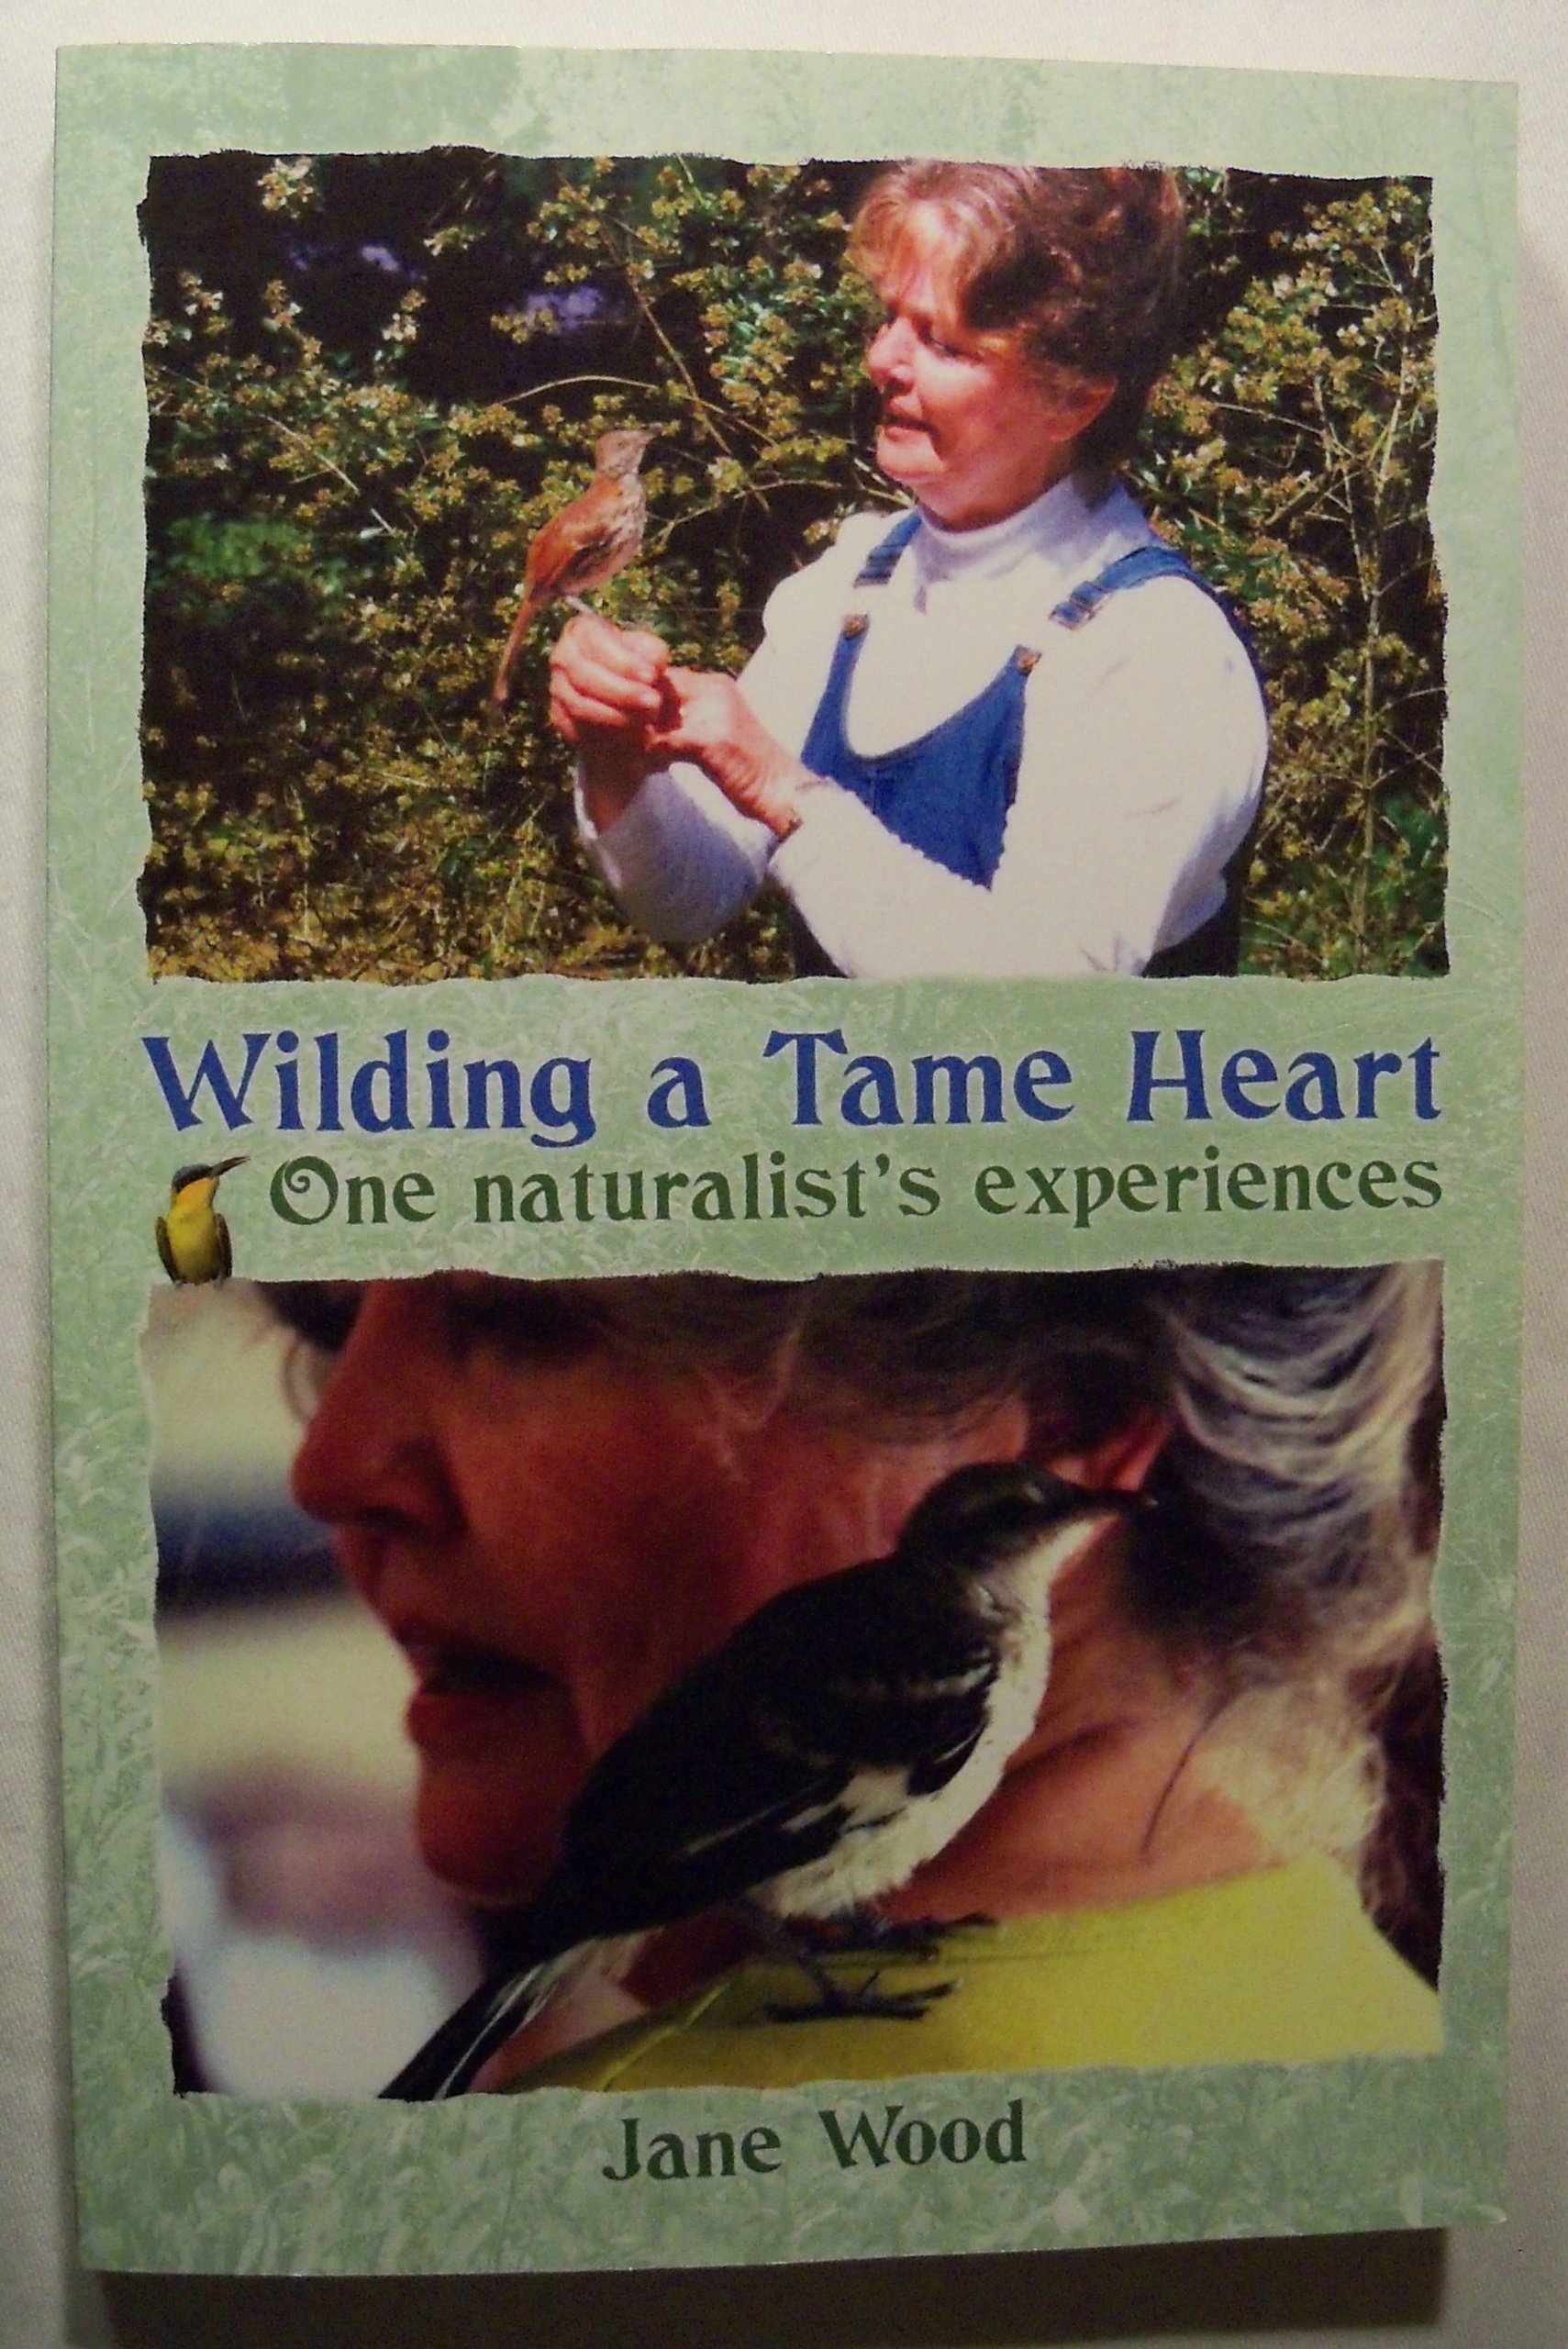 Wilding a Tame Heart, One naturalist's experiences